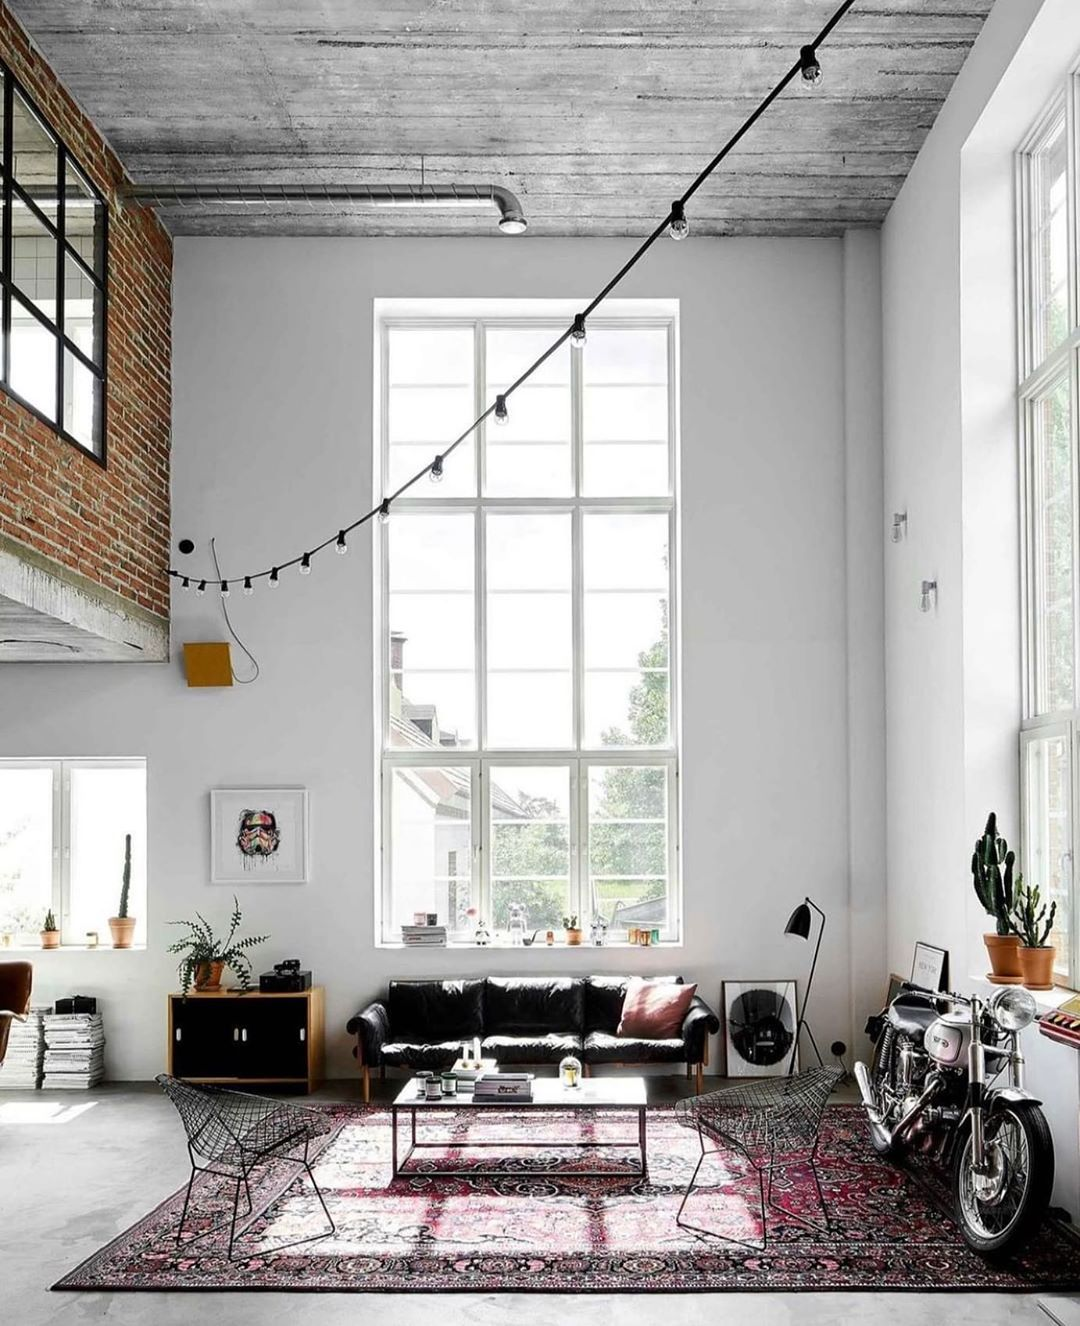 """Robert Allan Property's Instagram profile post: """"Warehouse conversions can be amazing spaces! � #warehouseconversions #warehouseliving #interiorliving"""""""